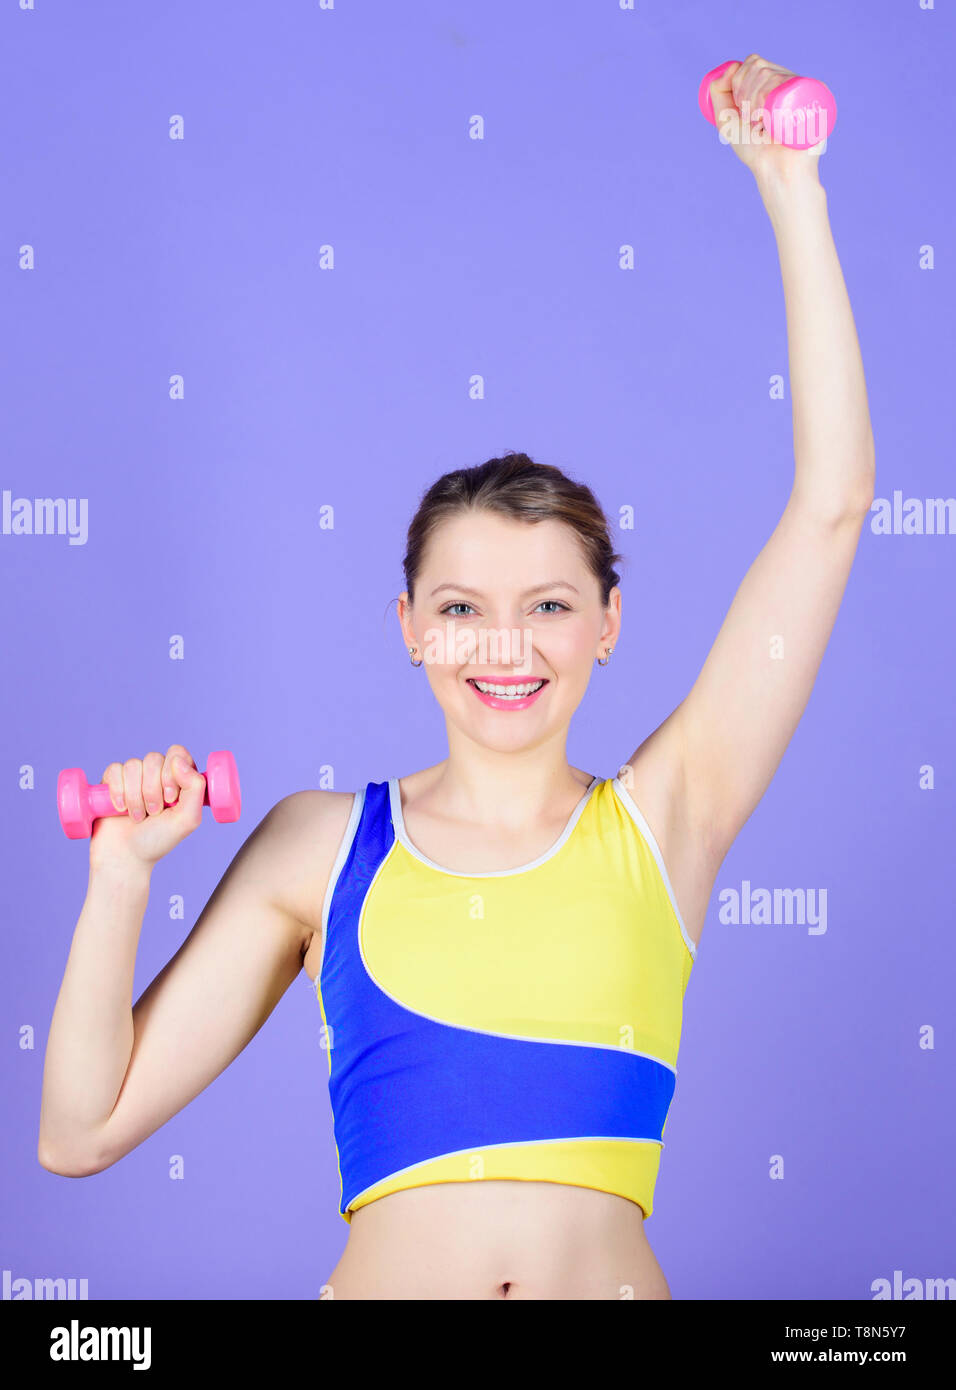 Exercising with more energy. Healthy lifestyle concept. Woman exercising with dumbbells. Fitness exercises with dumbbells. Workout with dumbbells. Girl hold dumbbells. Biceps exercises for female. - Stock Image